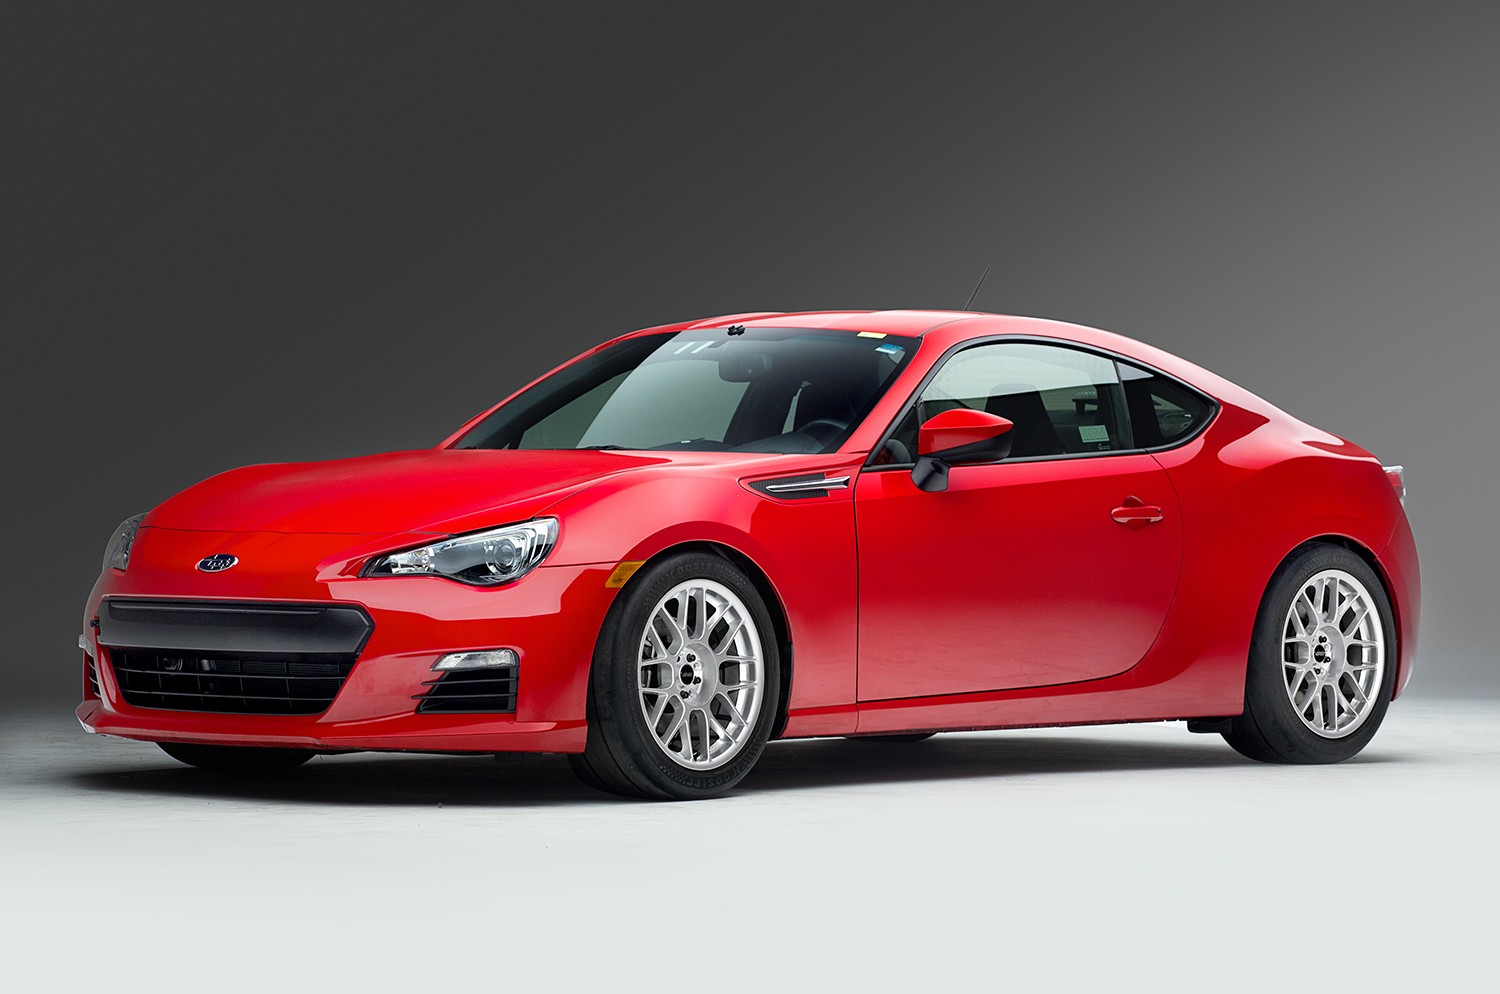 "Subaru BRZ<br />Race Silver 17x9"" ET42 ARC-8 wheels with 245/40-17 Hoosier R6 tires<br />Suspension: Ground Control full coilover<br />Camber: -2.3° front, -1.4° rear"